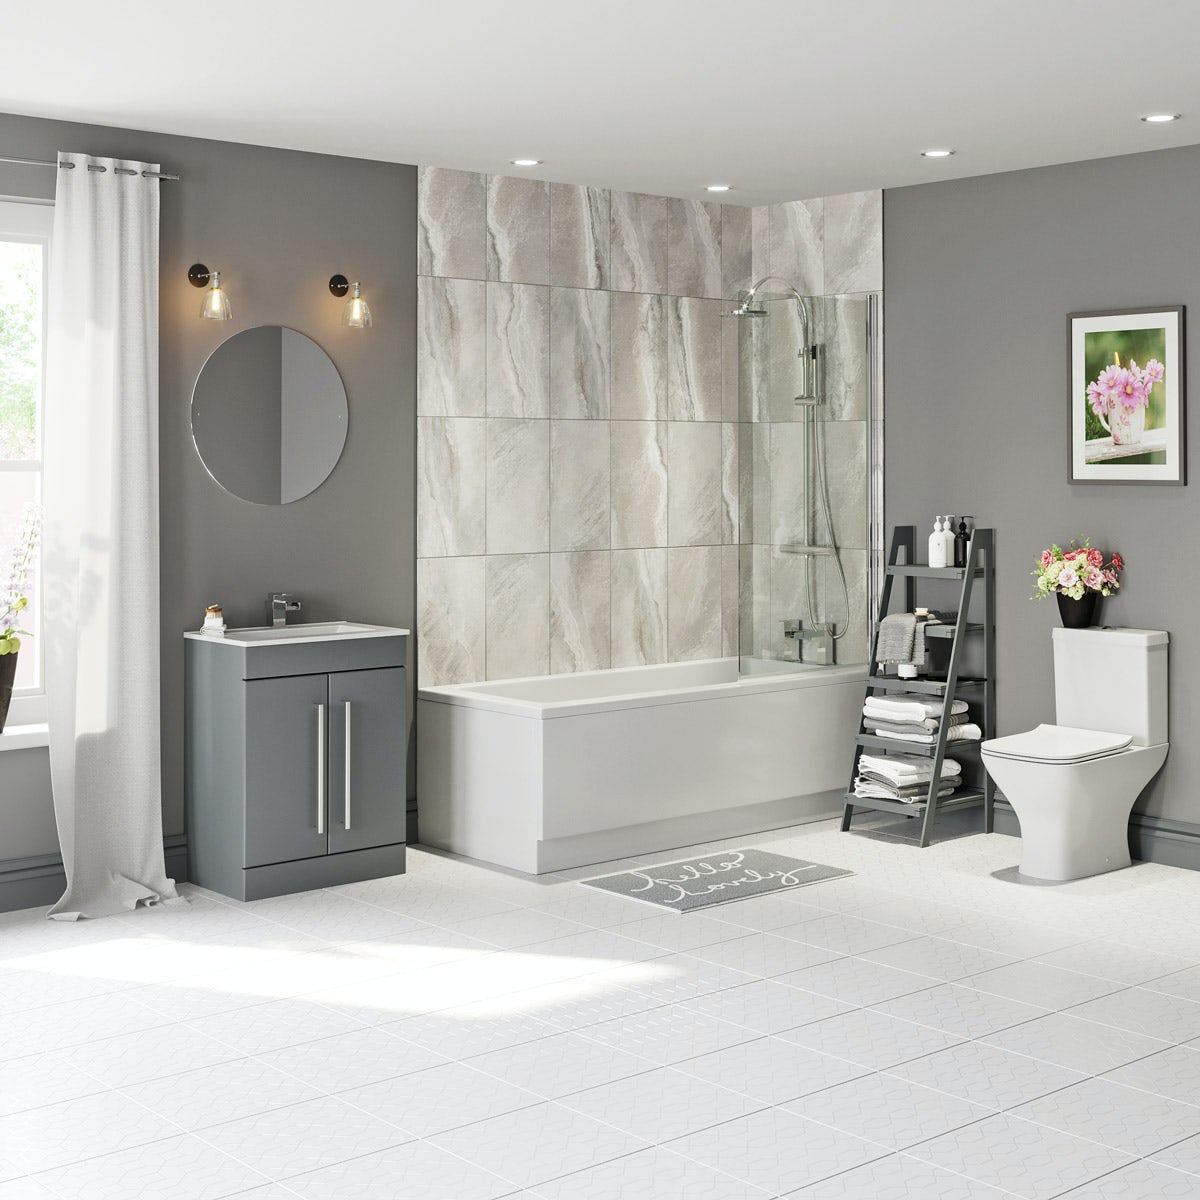 Orchard Derwent square straight shower bath suite